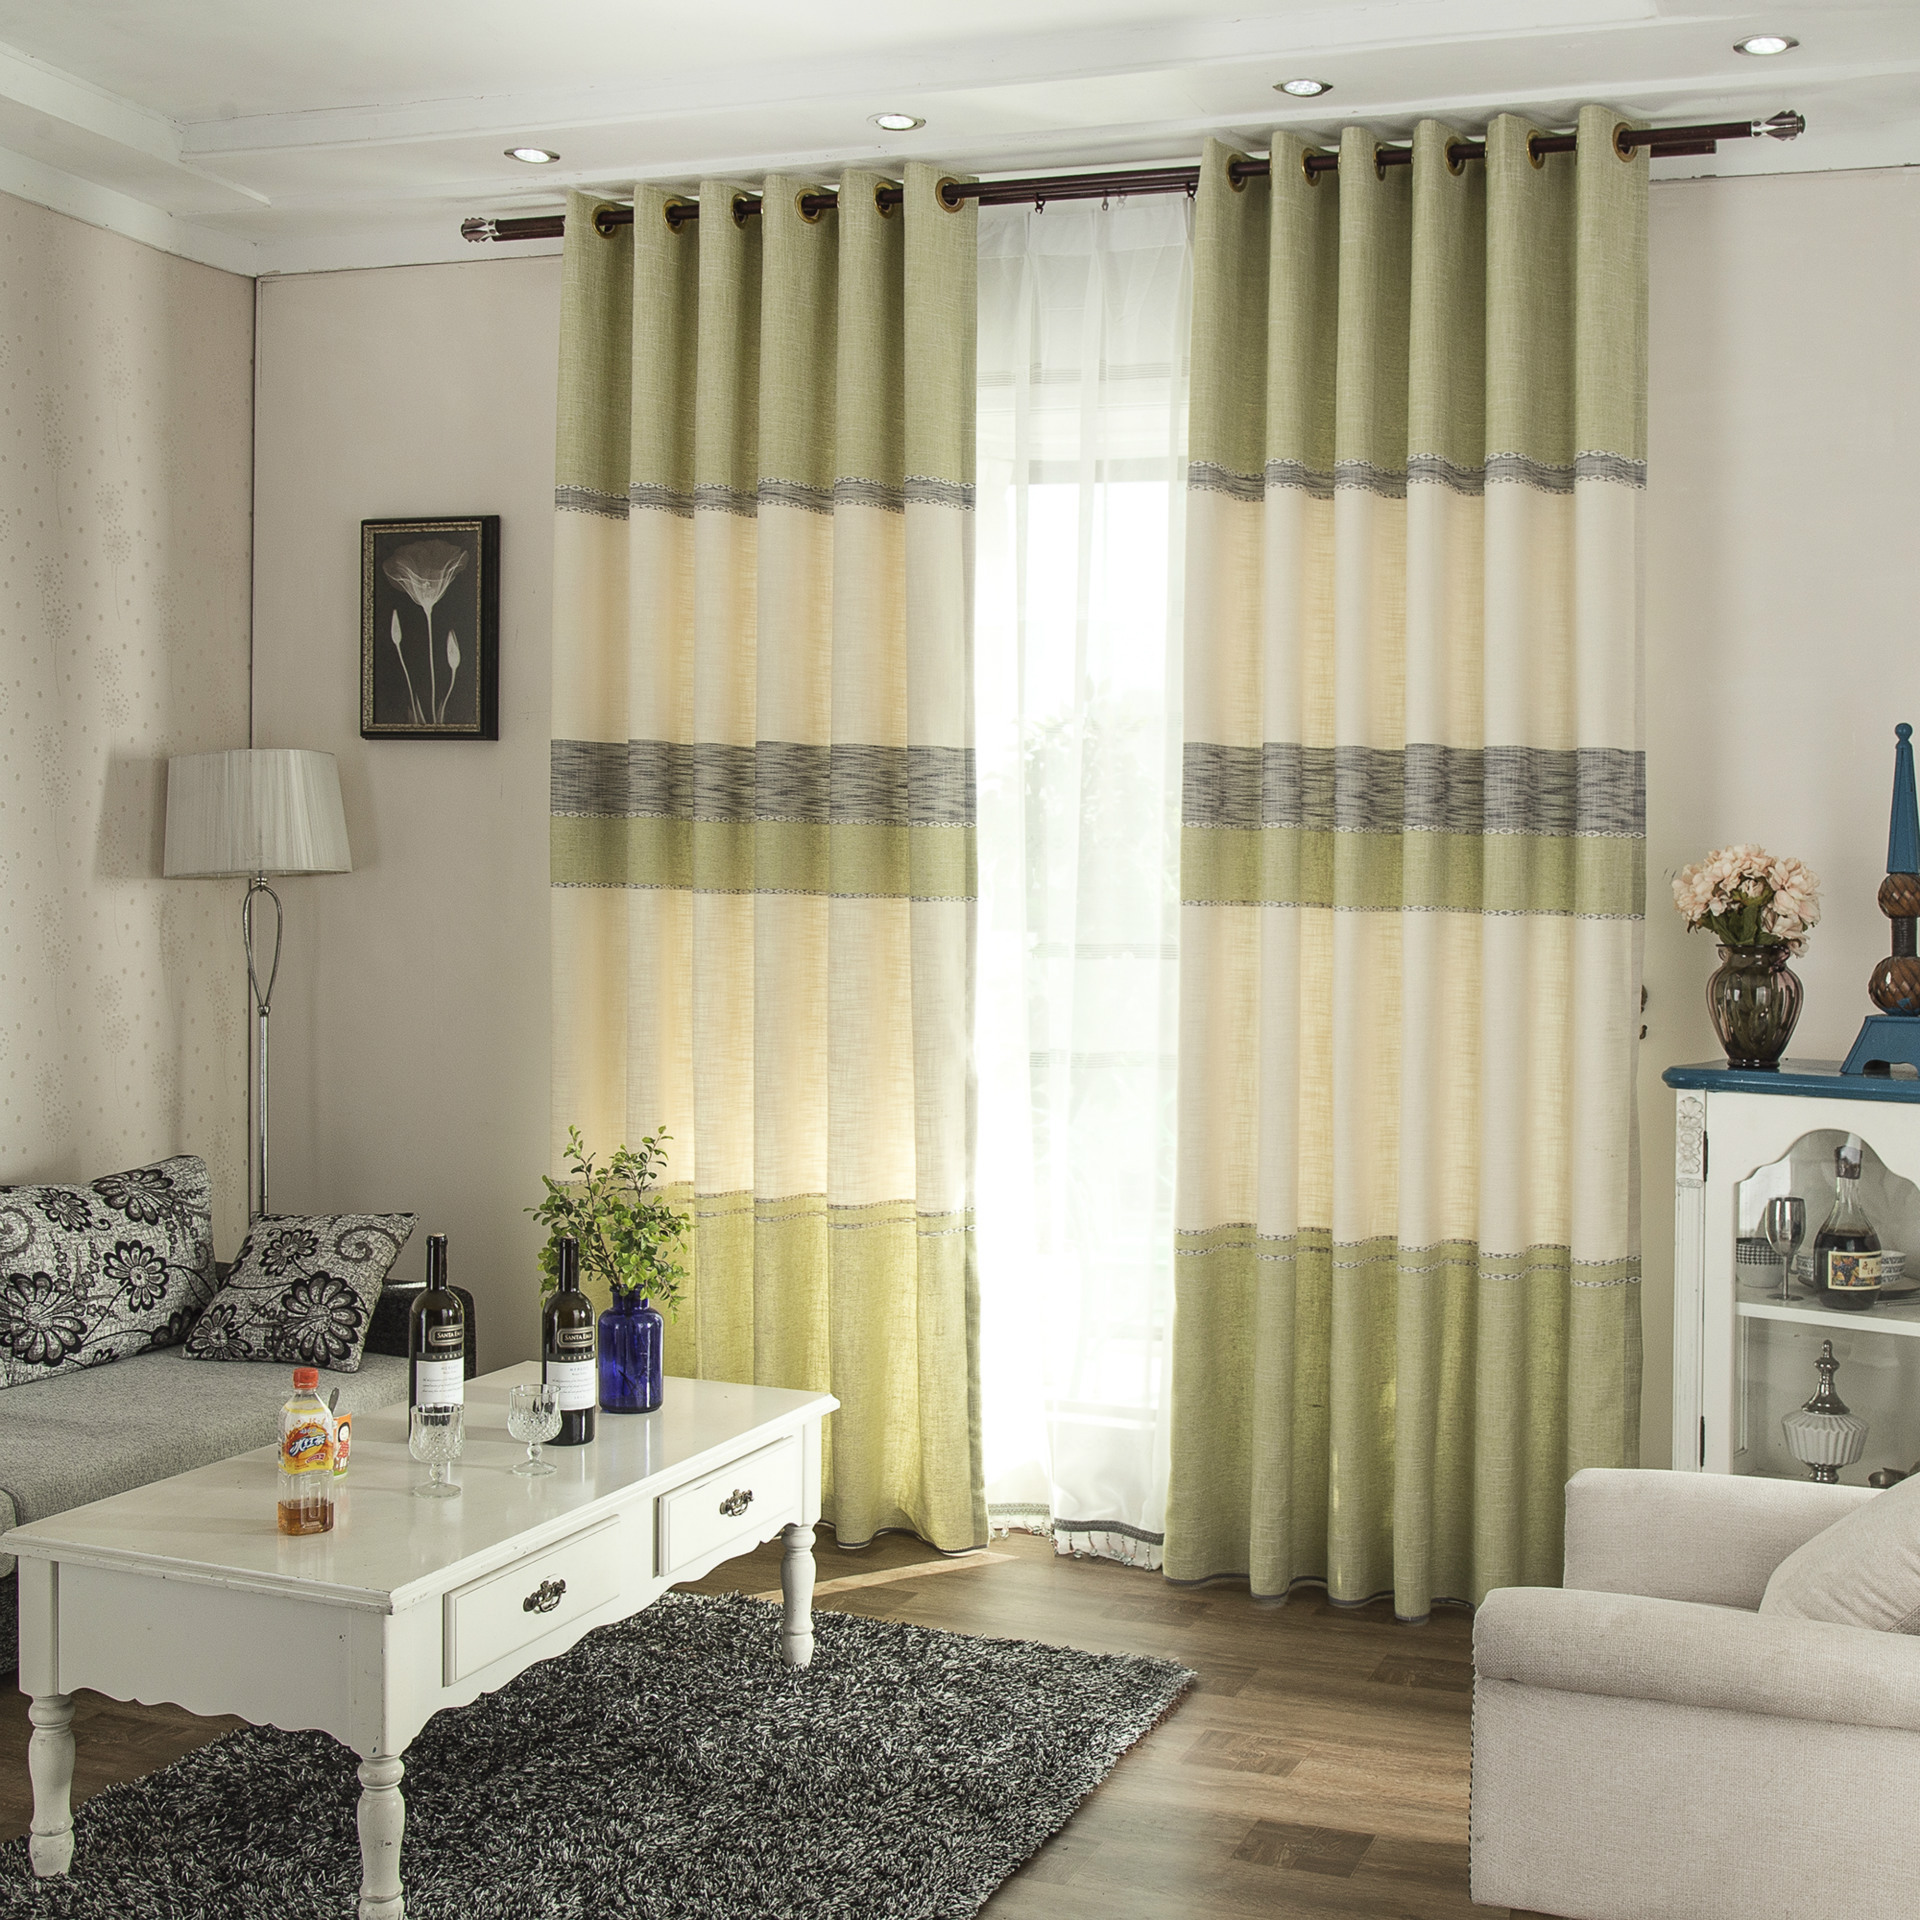 Buy curtains for bedroom 2016 new for Bedroom looks for 2016